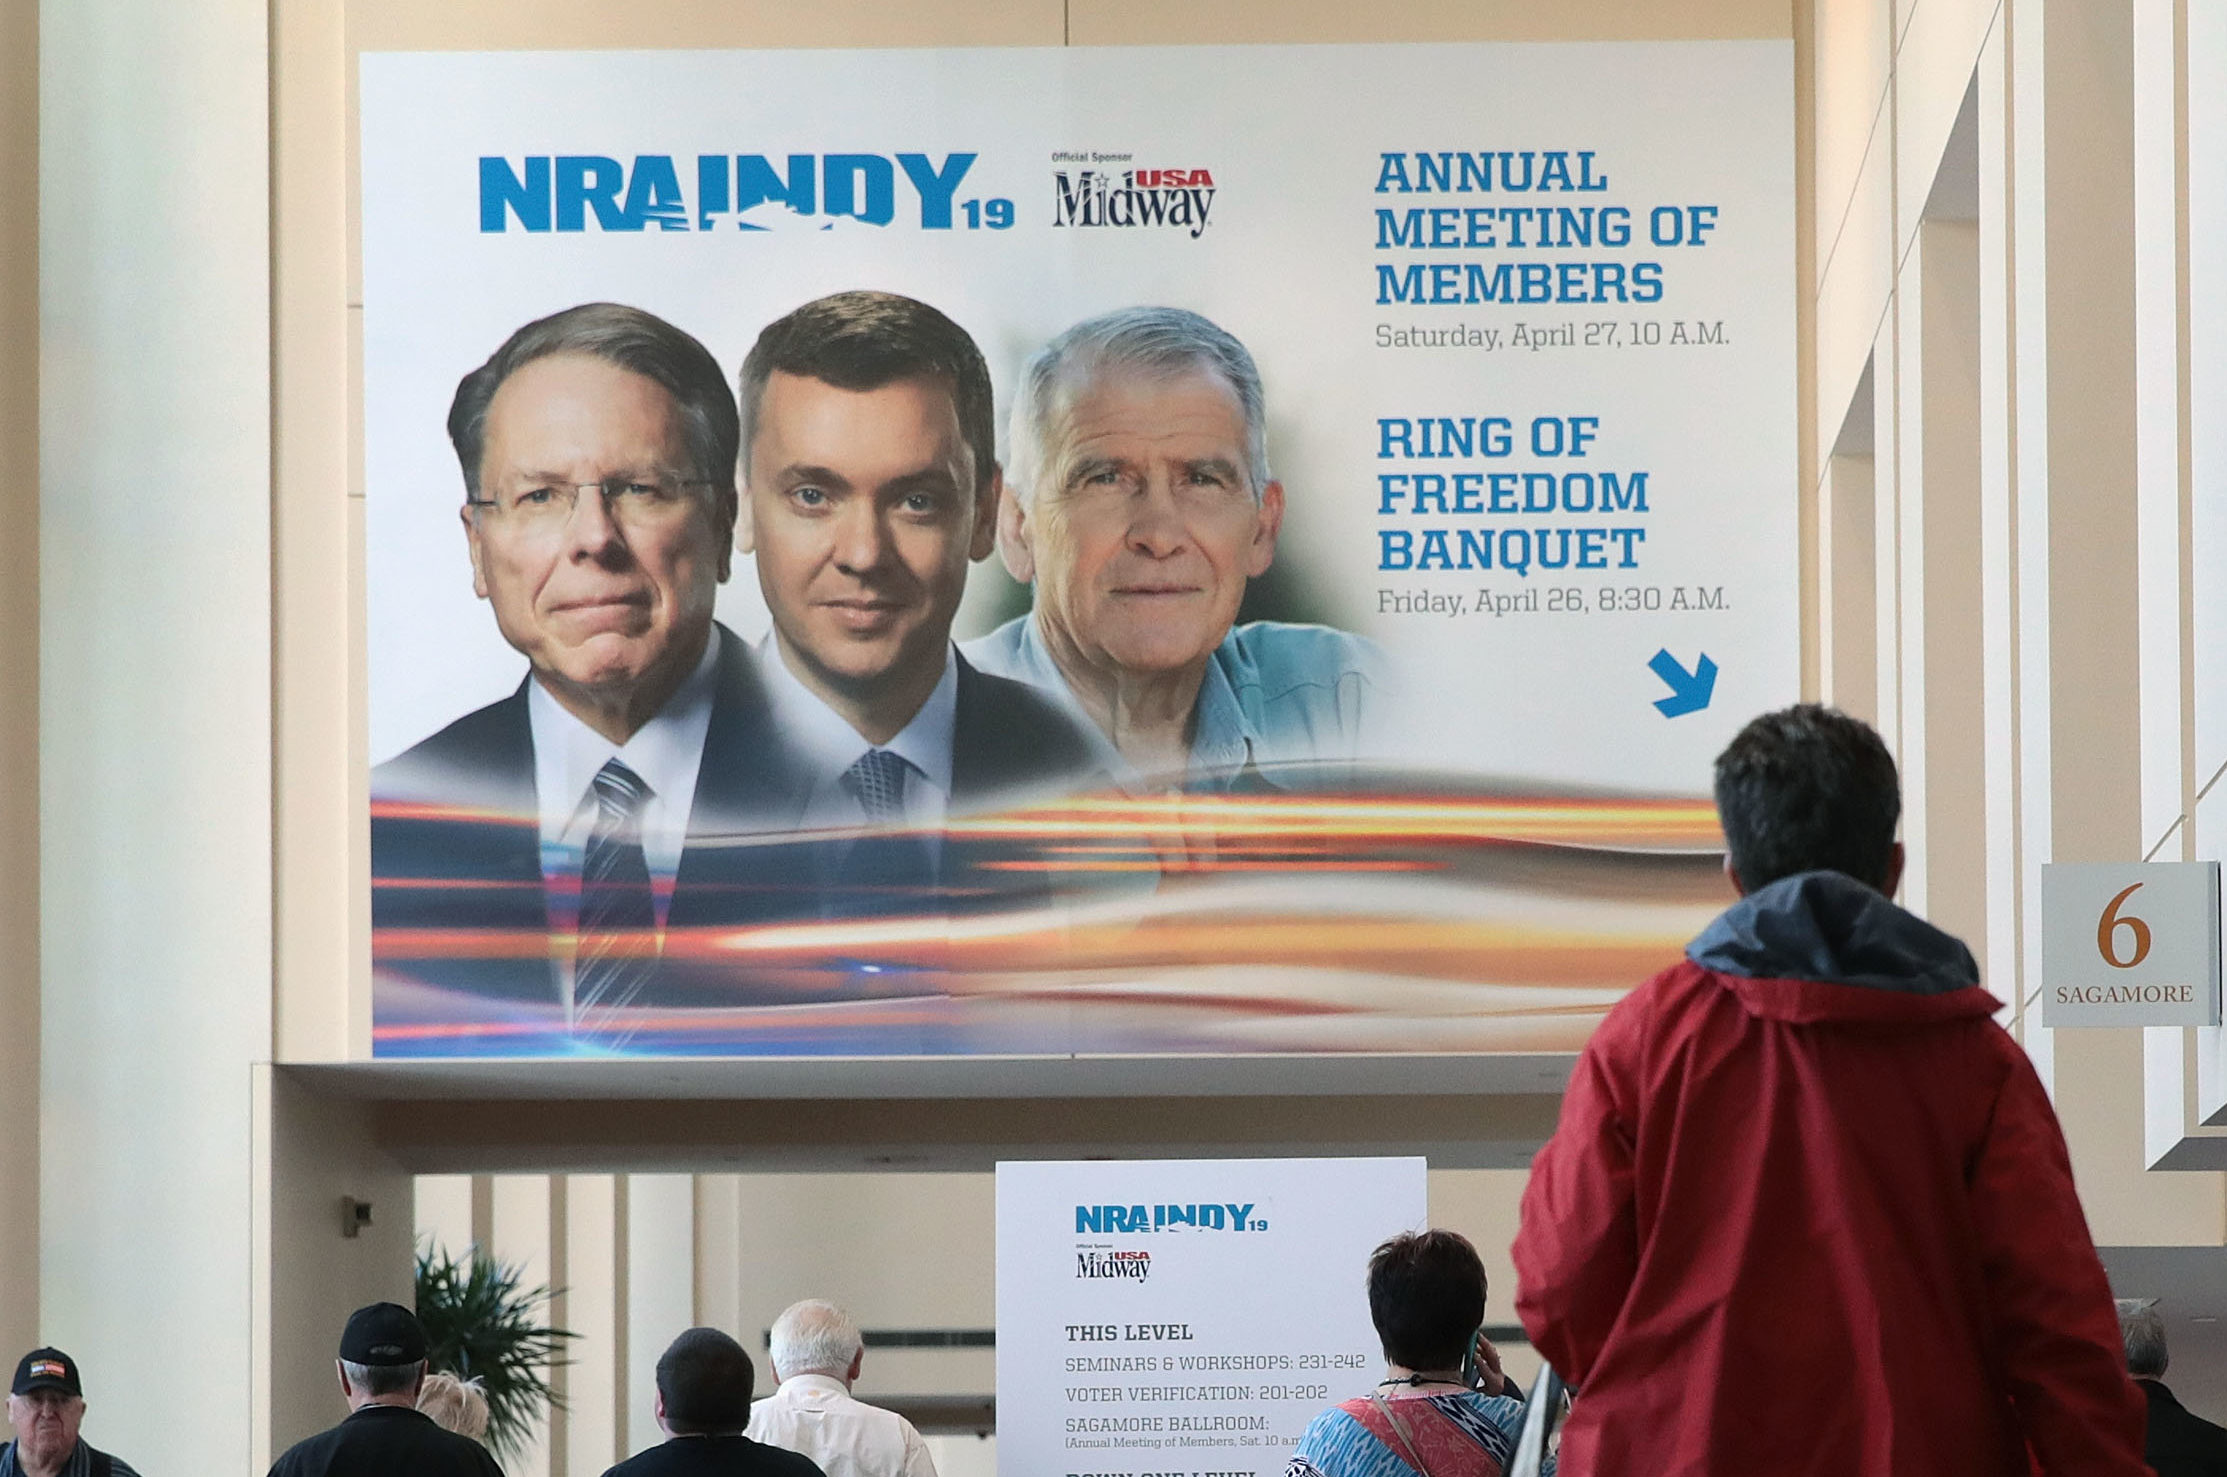 Guest walk under a poster featuring Wayne LaPierre (L), NRA vice president and CEO, Chris Cox (C), executive director of the NRA-ILA, and NRA president Oliver North outside a conference room where the NRA annual meeting of members was being held at the 148th NRA Annual Meetings & Exhibits on April 27, 2019 in Indianapolis, Indiana. Only LaPierre remains. (Photo by Scott Olson/Getty Images)